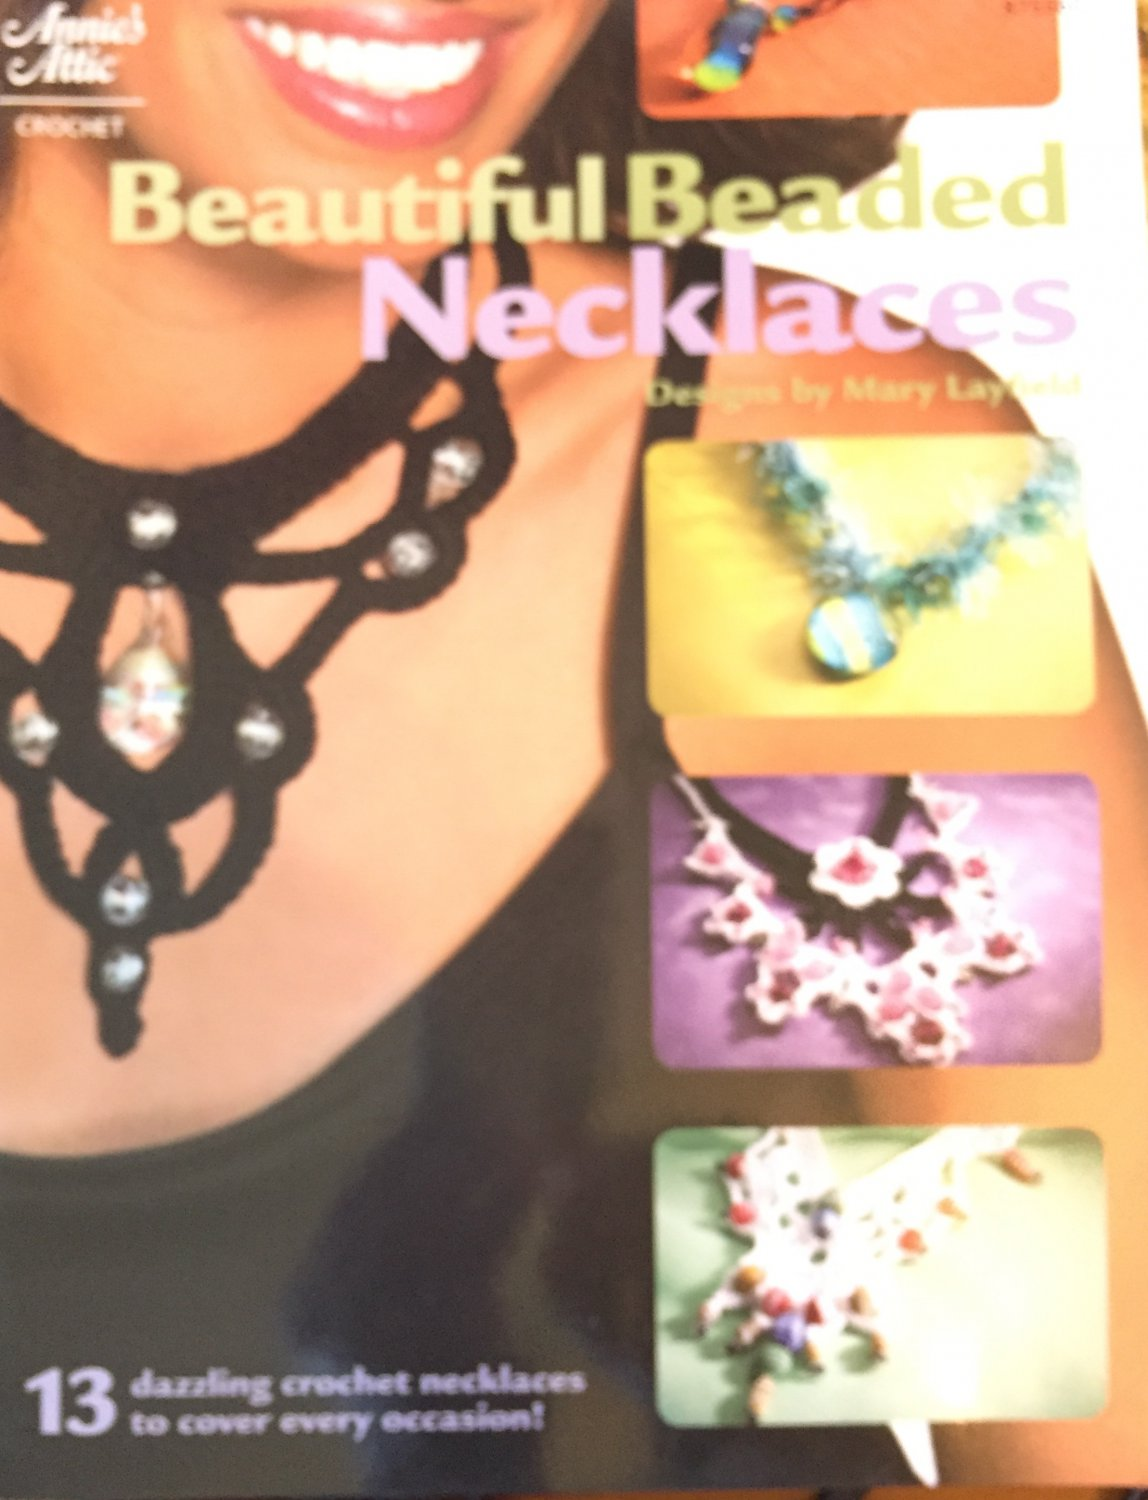 Annie's Attic 875560 Beautiful Beaded Necklaces Mary Layfield